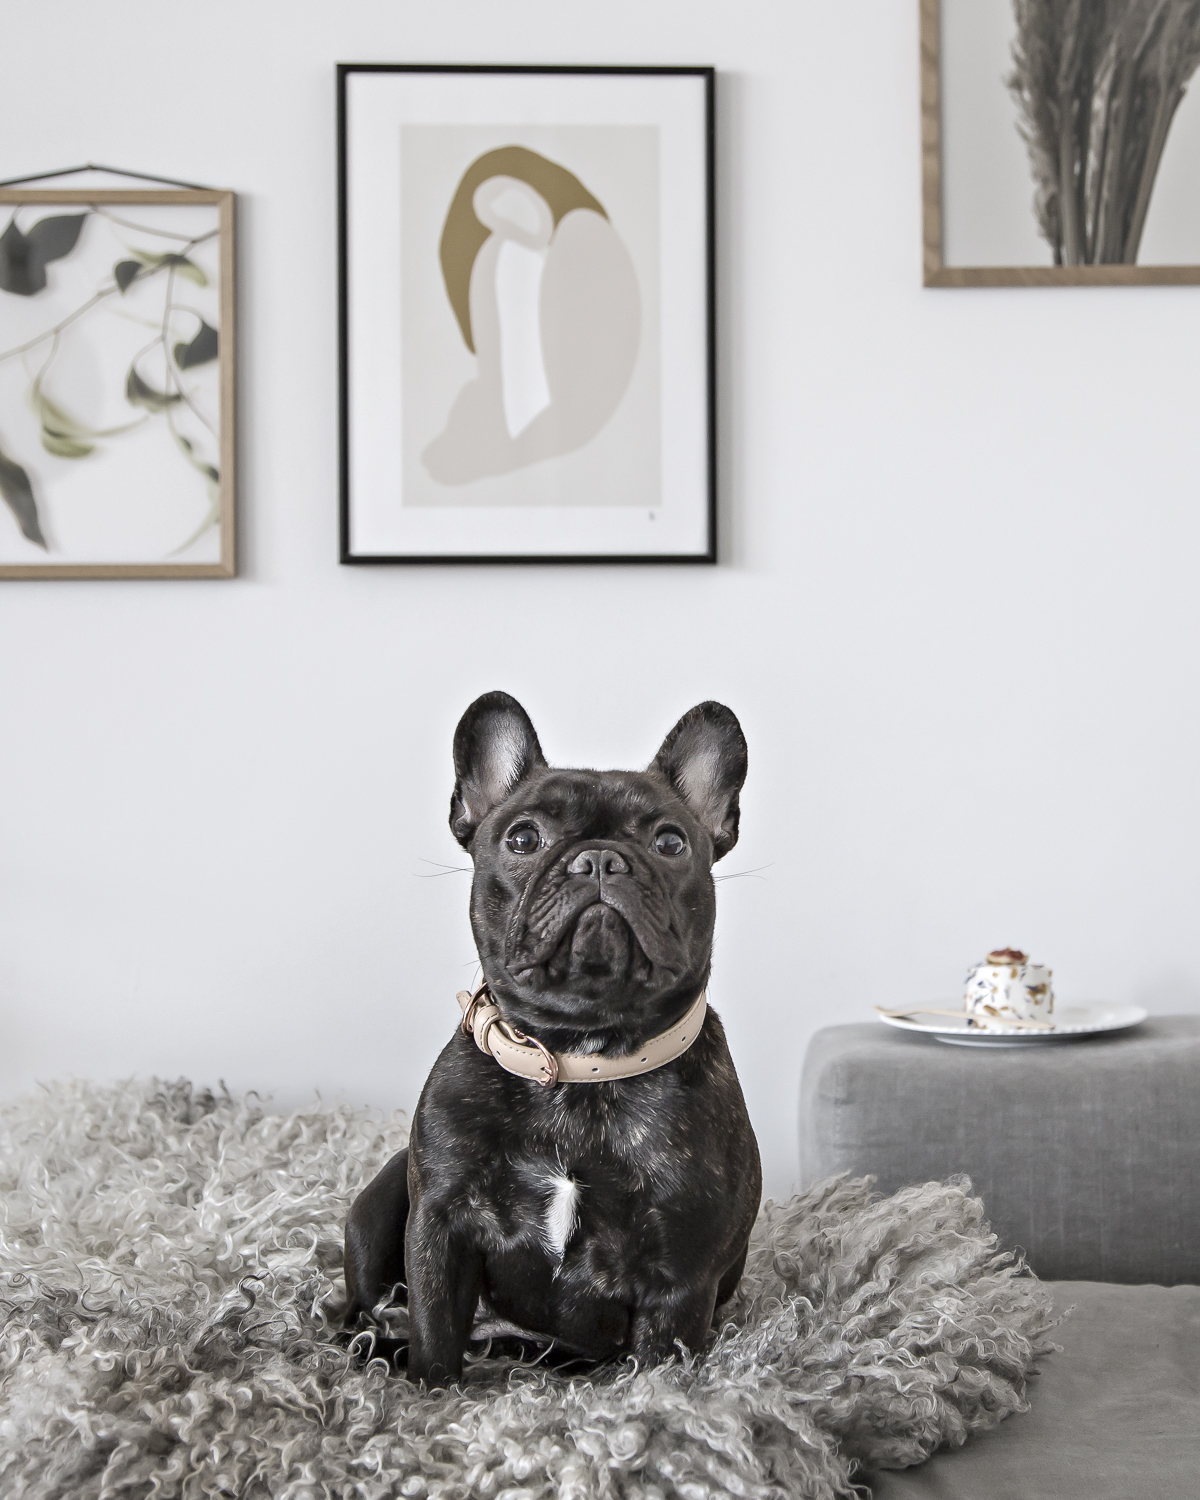 Getting a French Bulldog – my personal advice